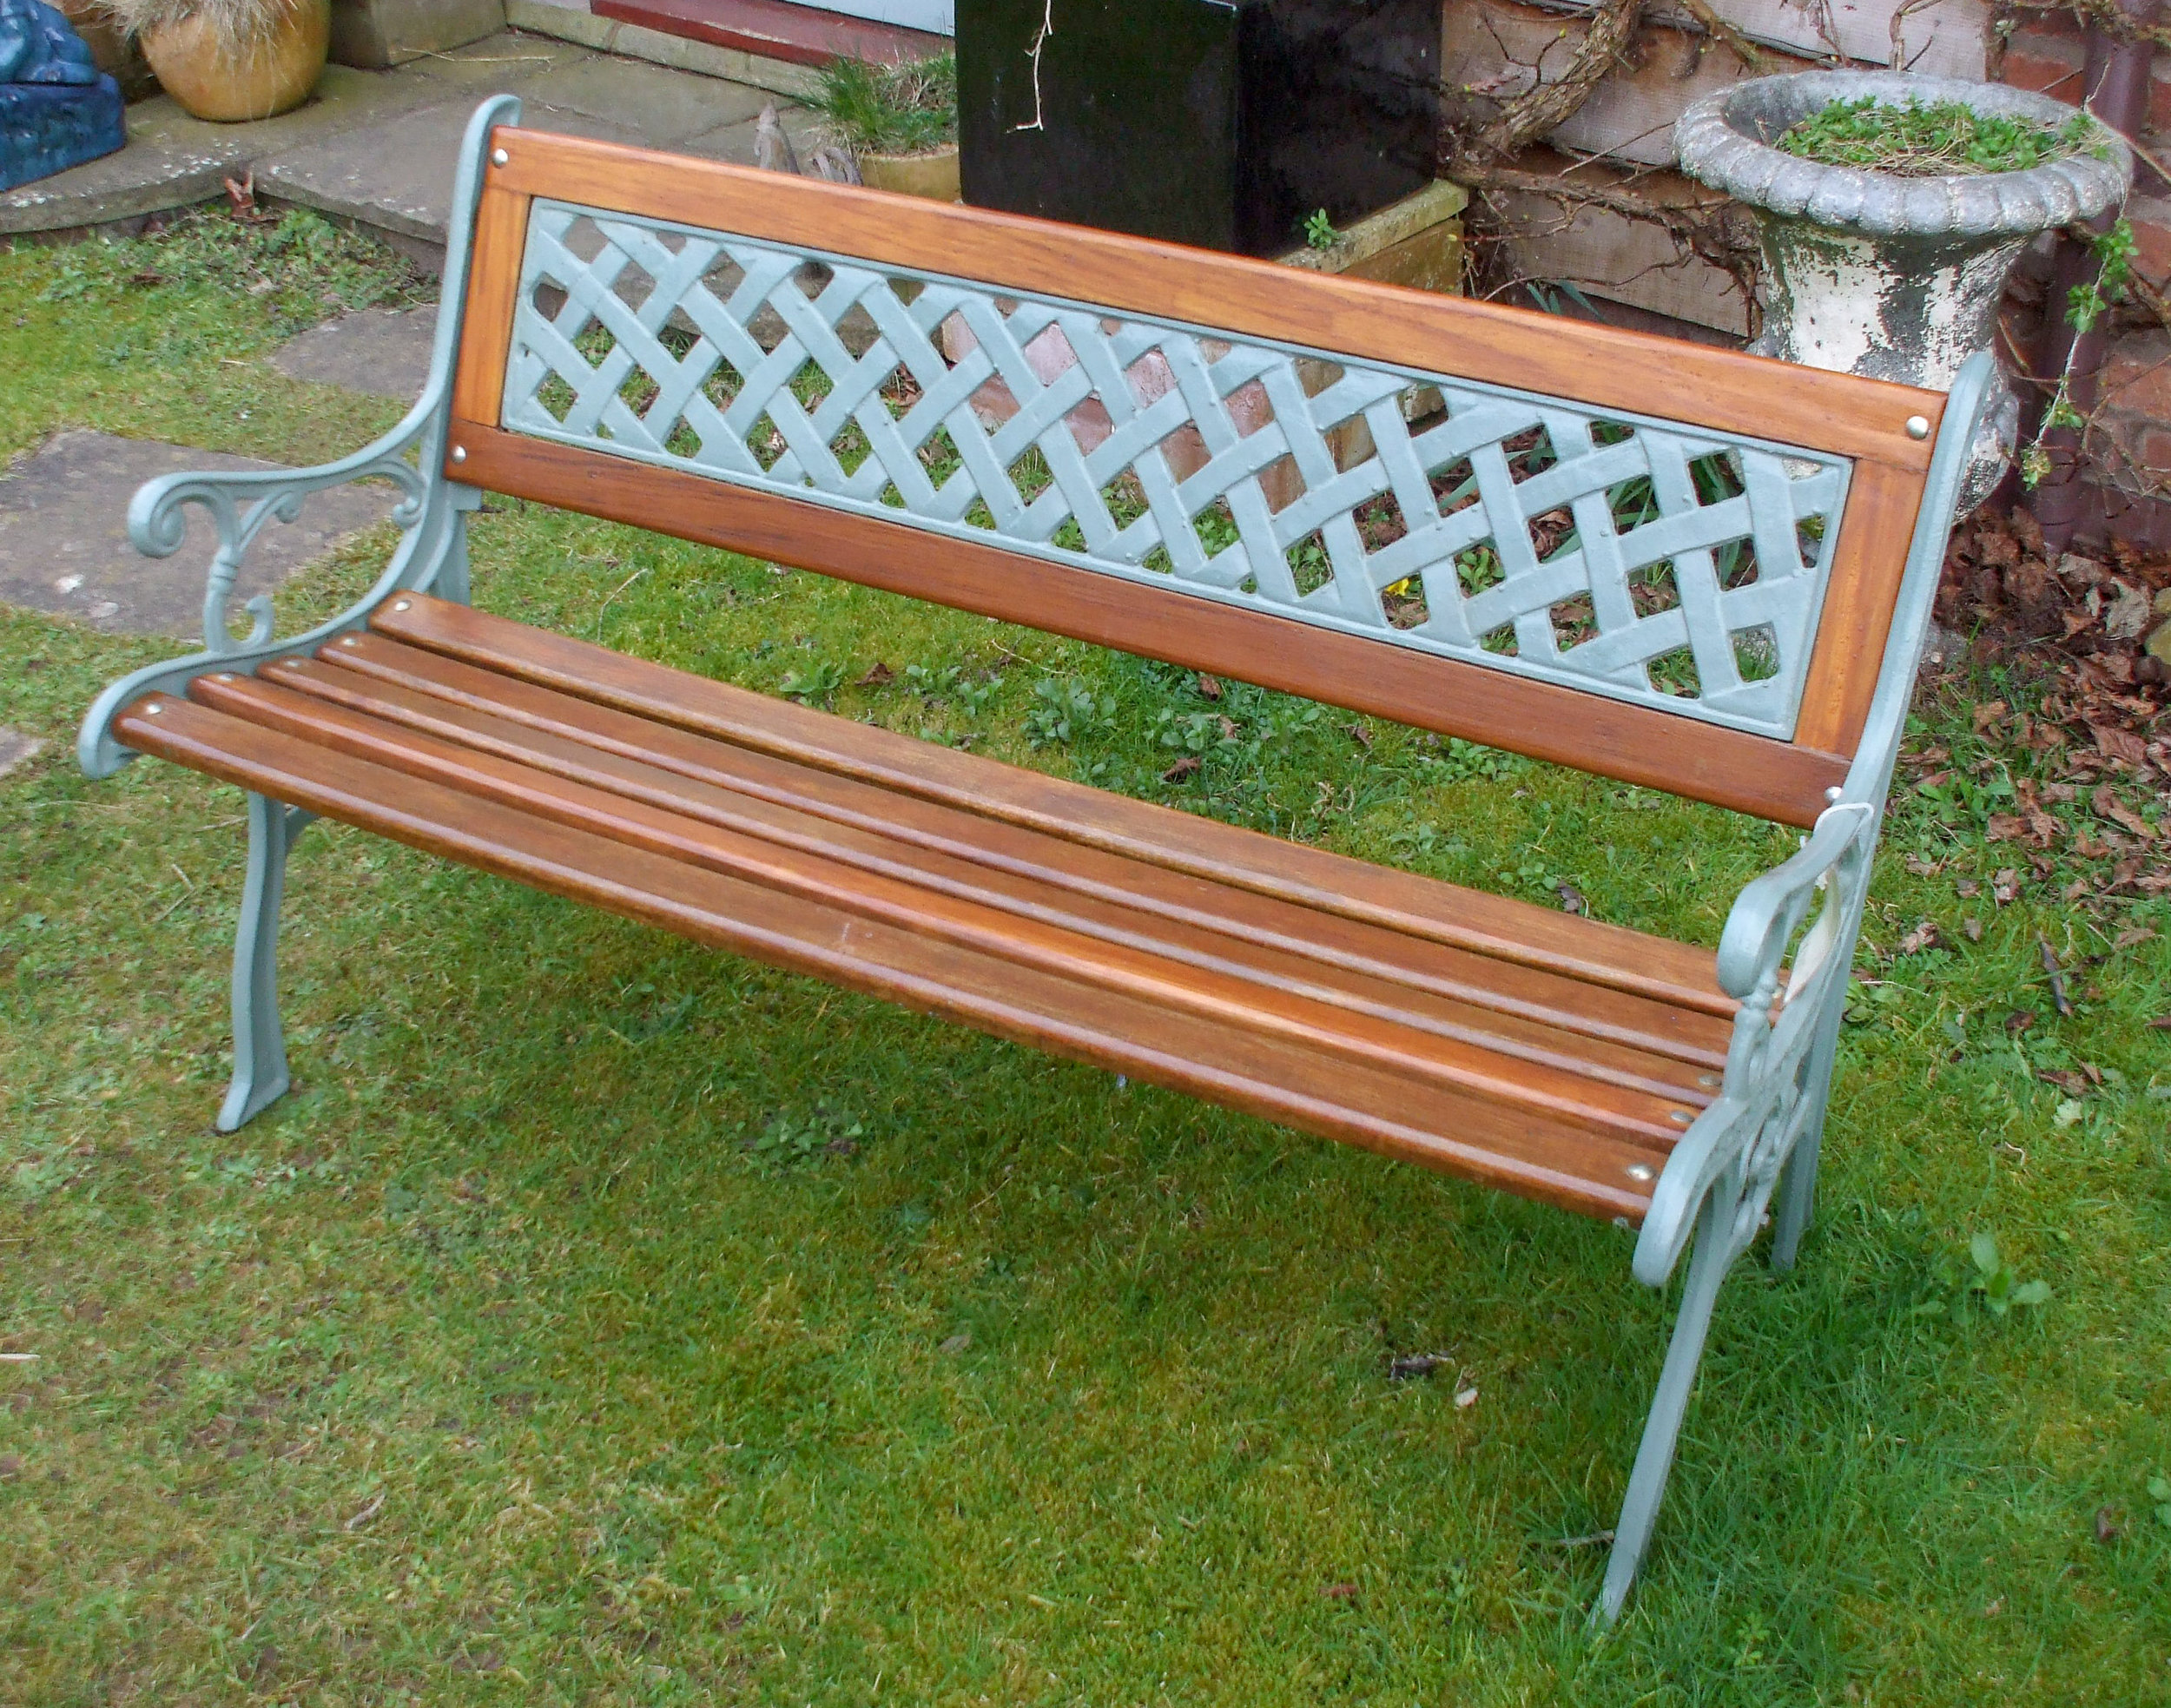 Two Seat Bench - go to   Gallery   for larger photos